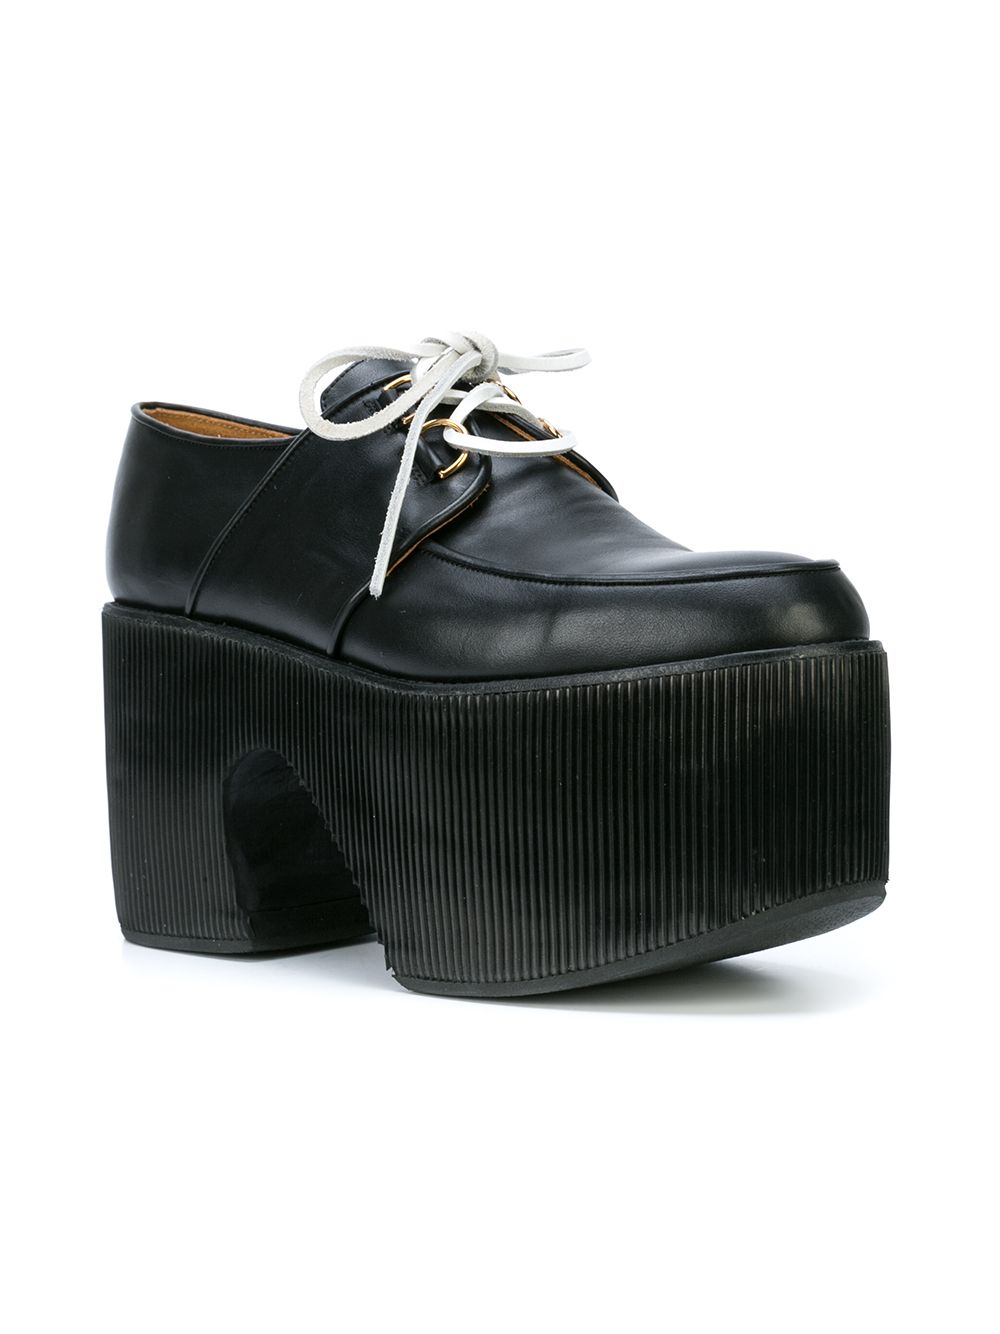 Charles Jeffrey Loverboy Black Death Drop Creepers - 2